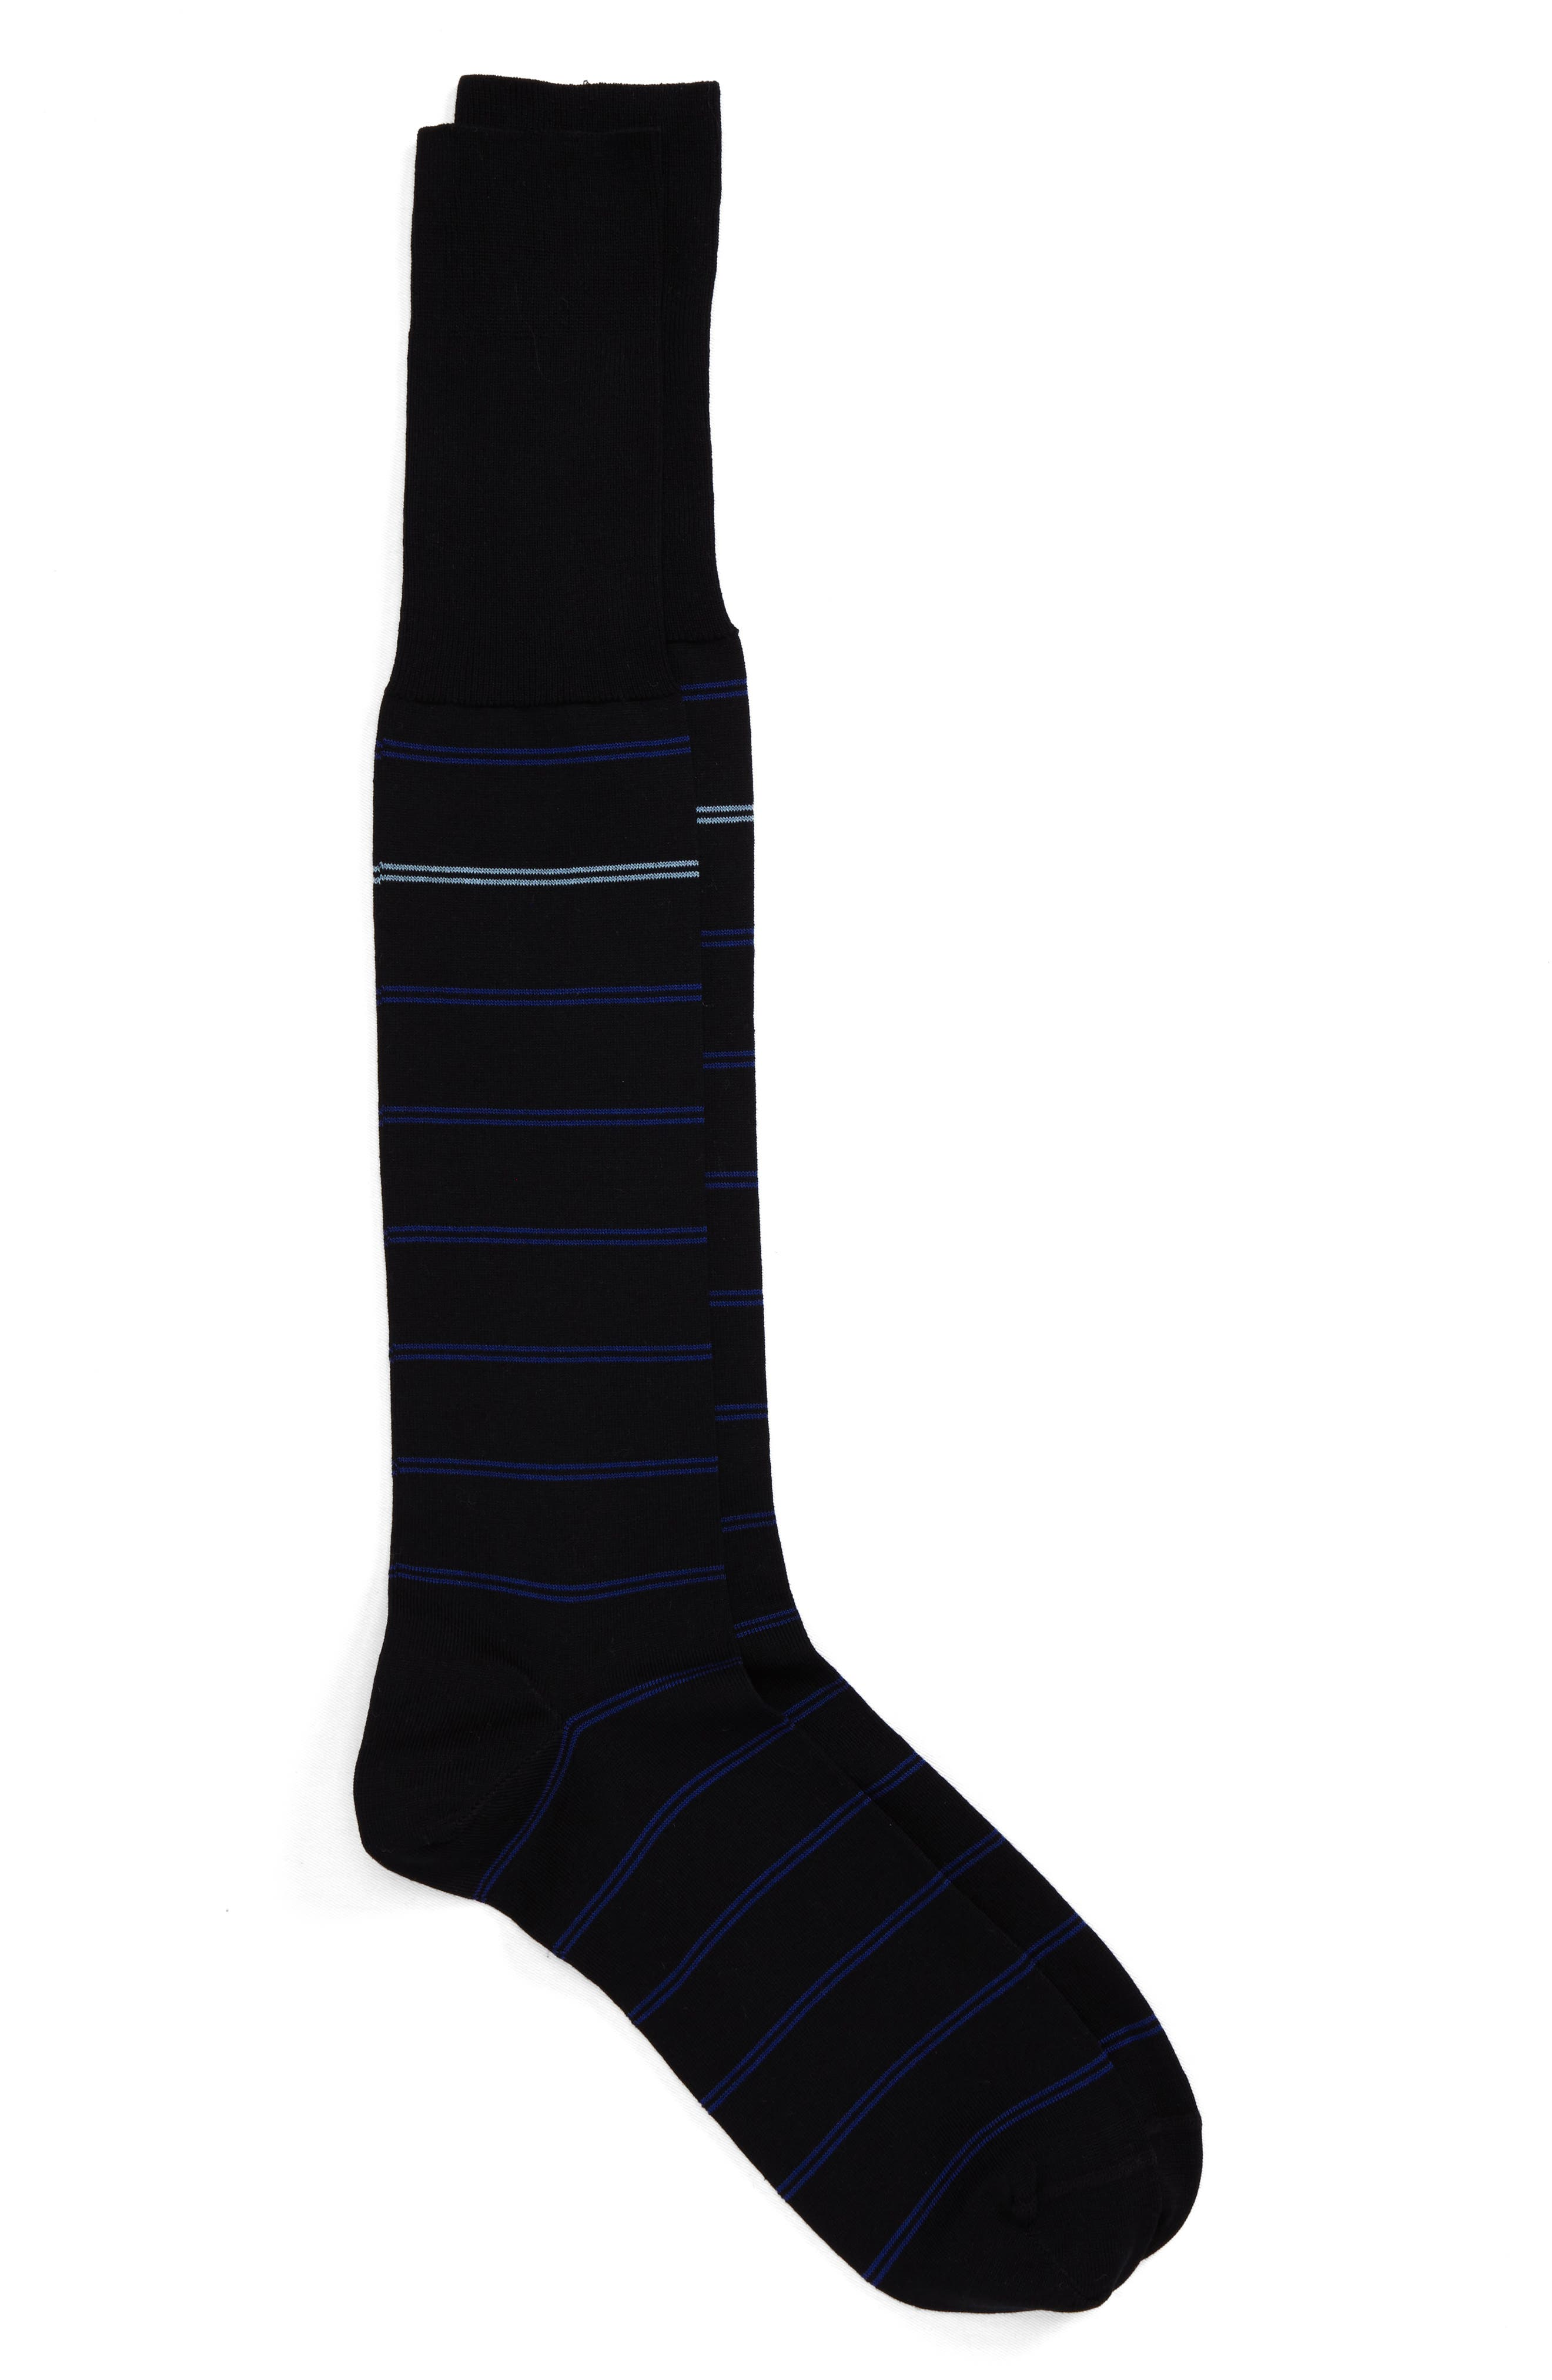 Parallel Lines Over the Calf Socks,                             Main thumbnail 1, color,                             Black/ Blue